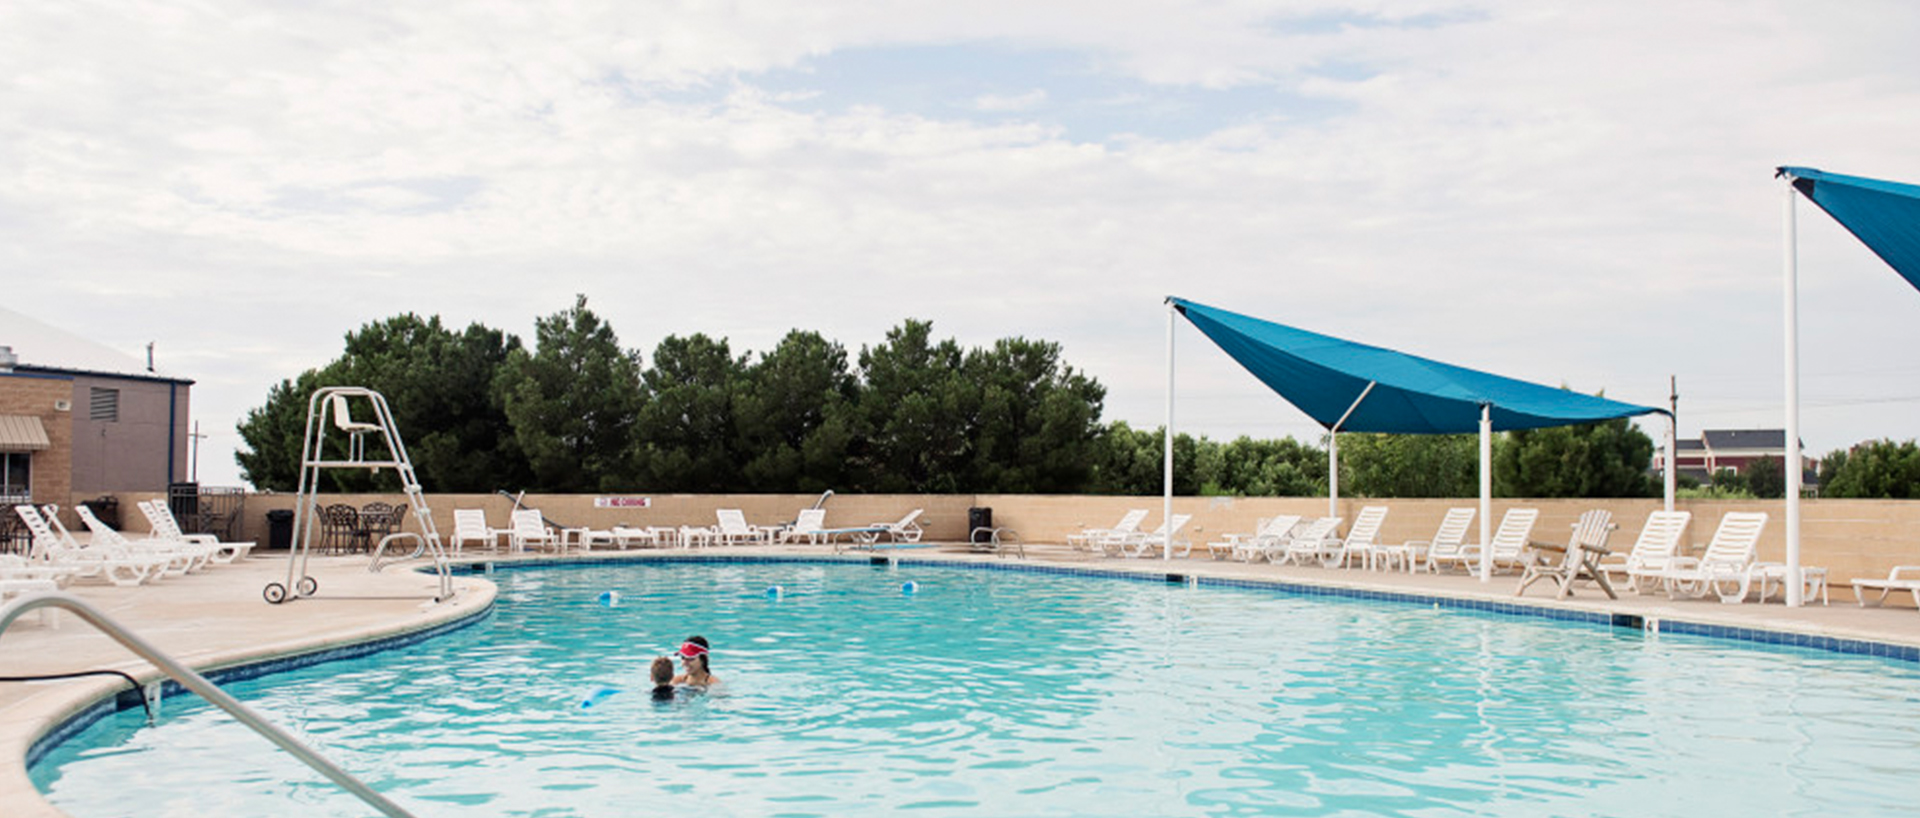 A brightly pool area with people inside the water. Around the pool there are chairs with canopies over them and cabanas.